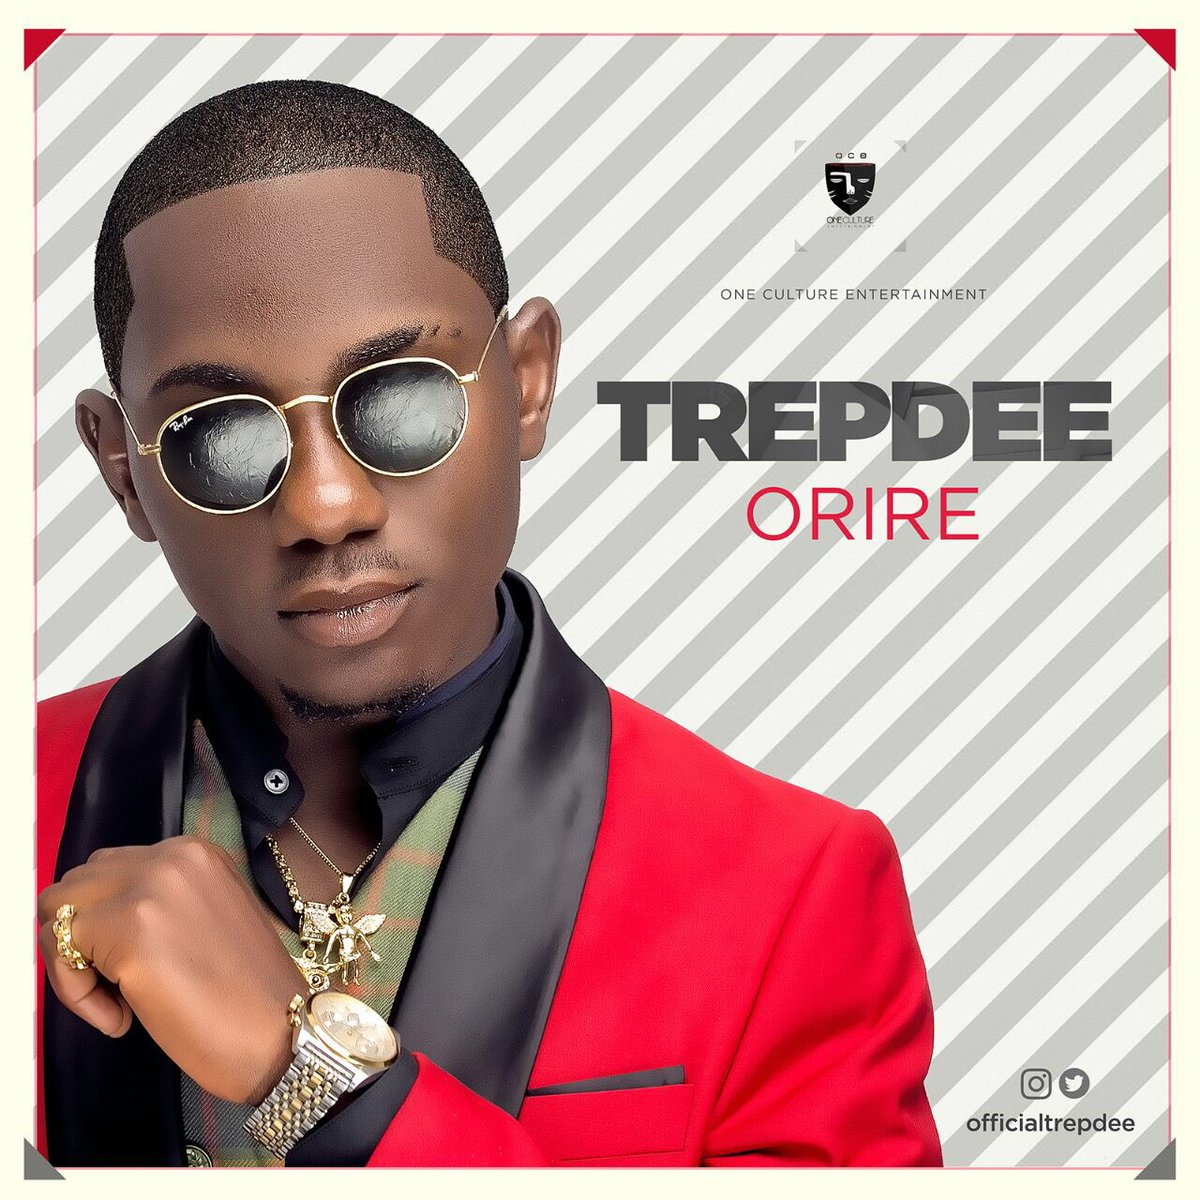 New fire jam today by @OfficialTrepdee #ORIRE